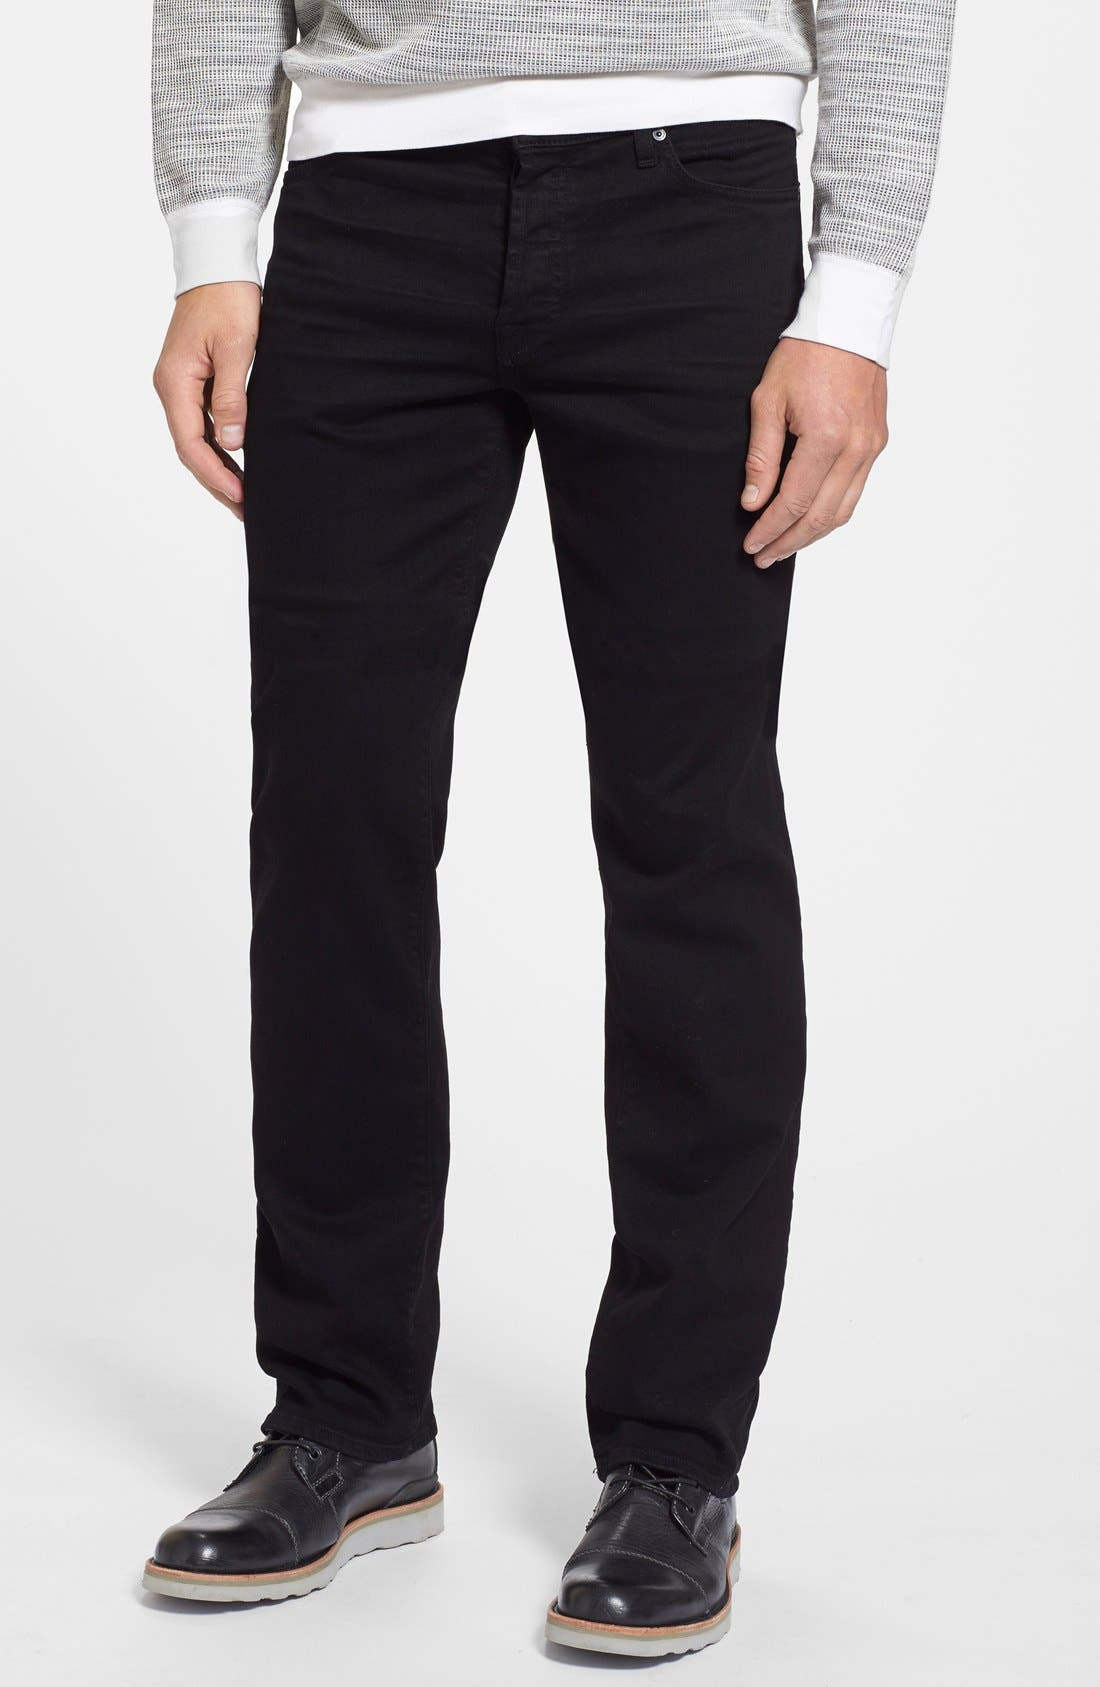 7 For All Mankind® The Standard - Luxe Performance Straight Leg Jeans (Nightshade Black)